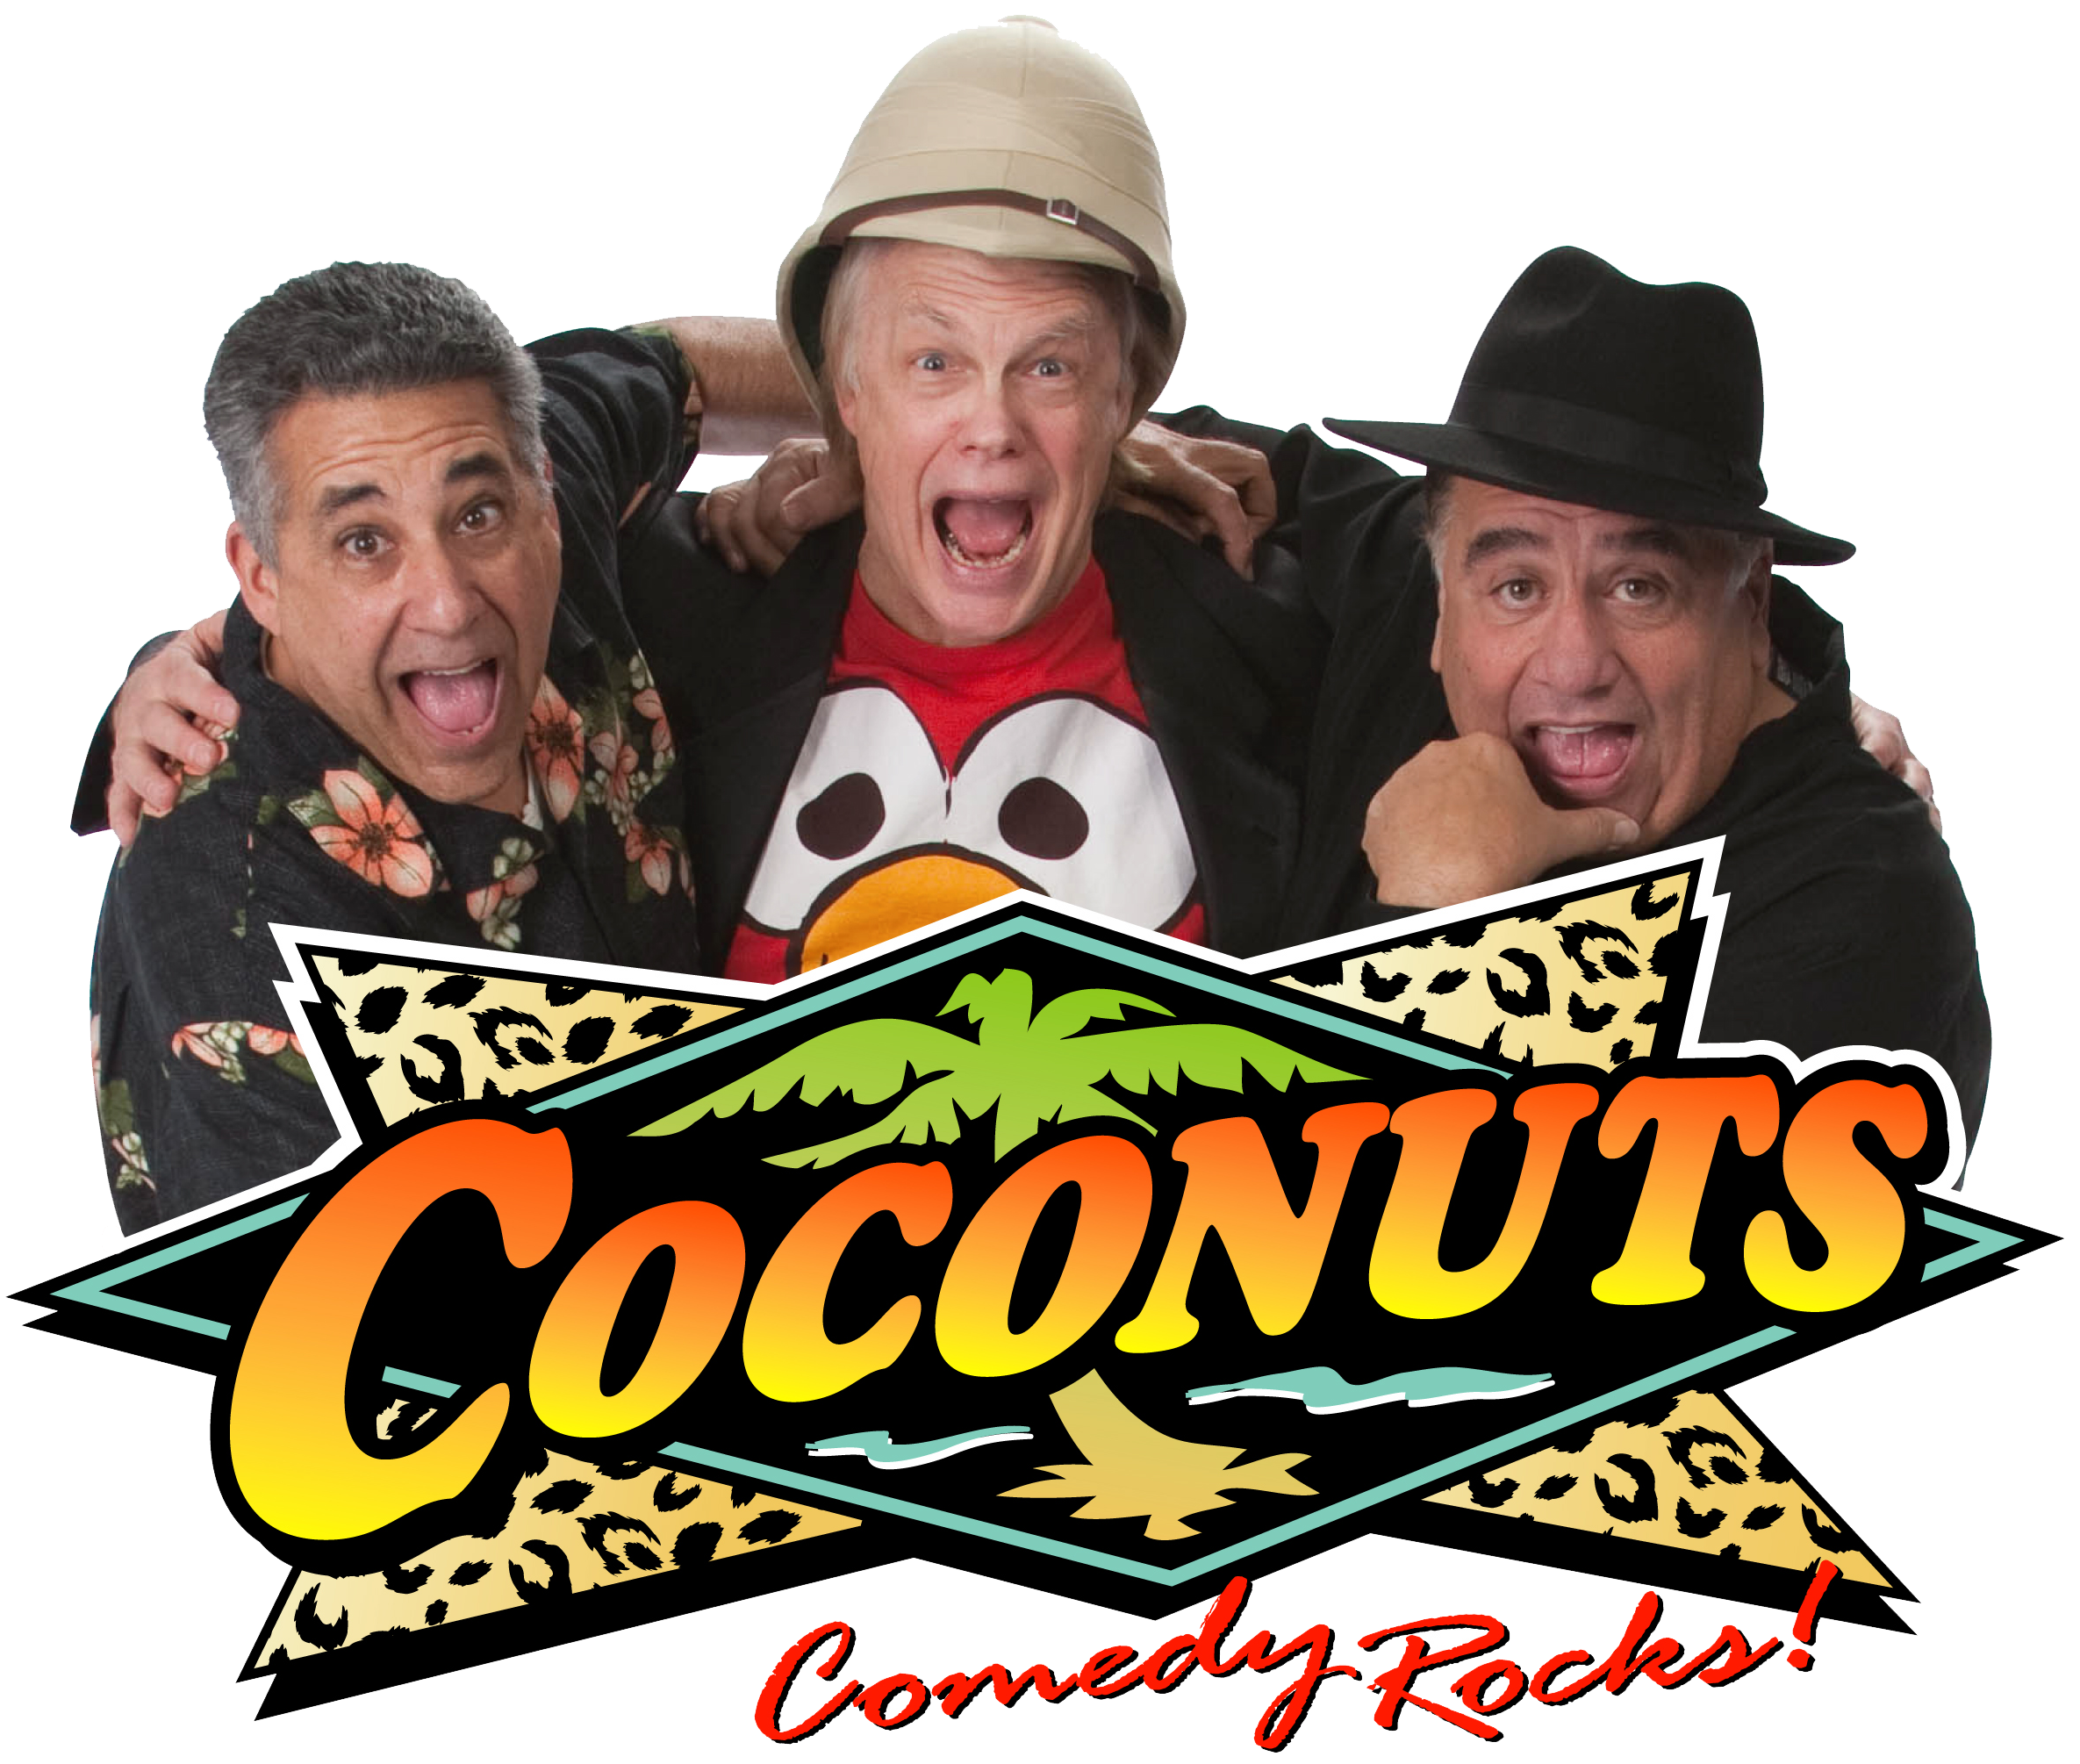 Coco_photo-logo-3.png